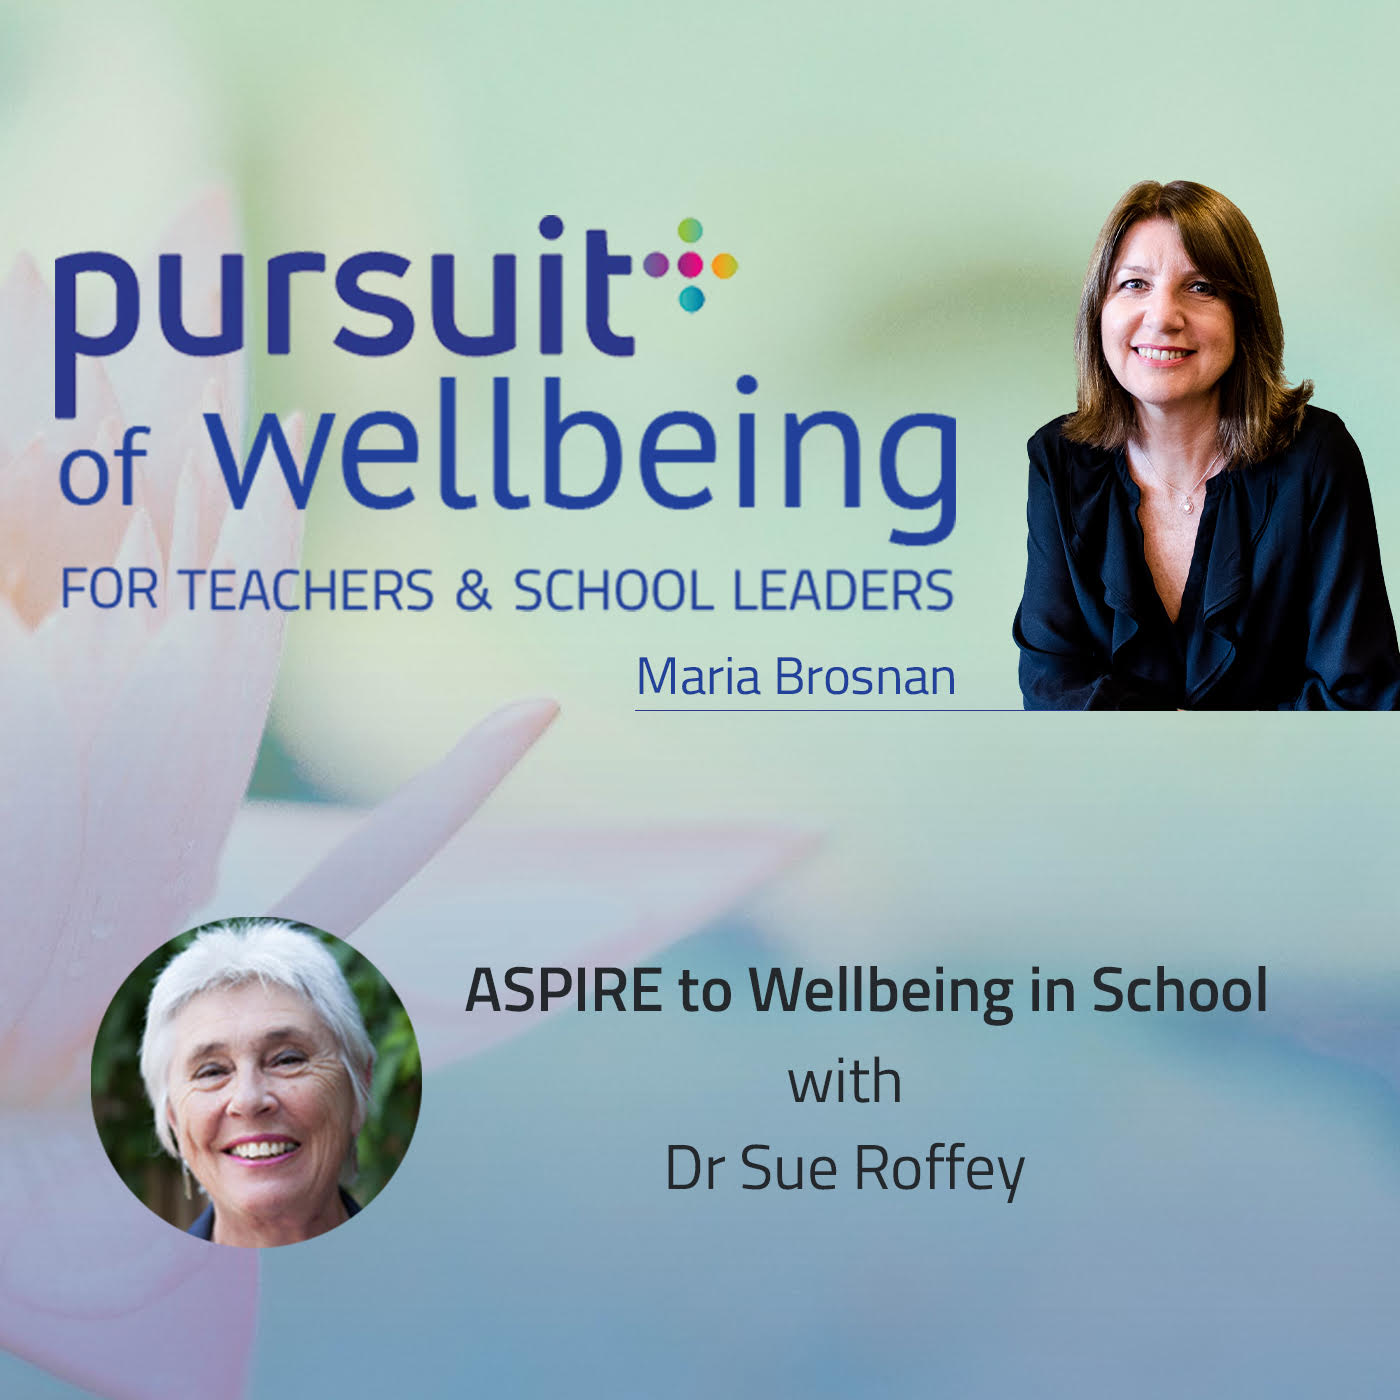 ASPIRE to Wellbeing in School with Dr Sue Roffey